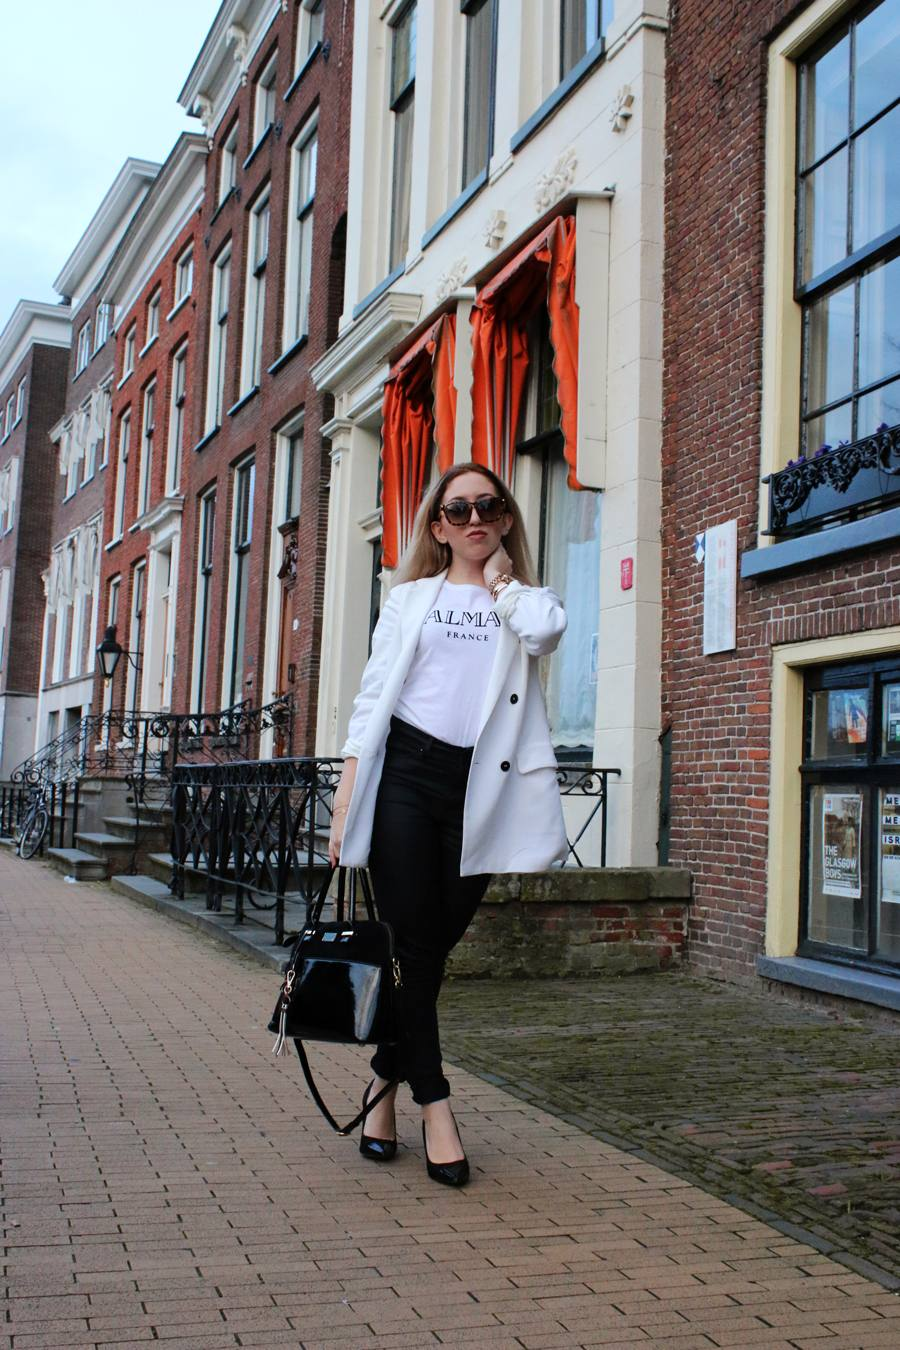 OUTFIT OF THE DAY | Monochromatic